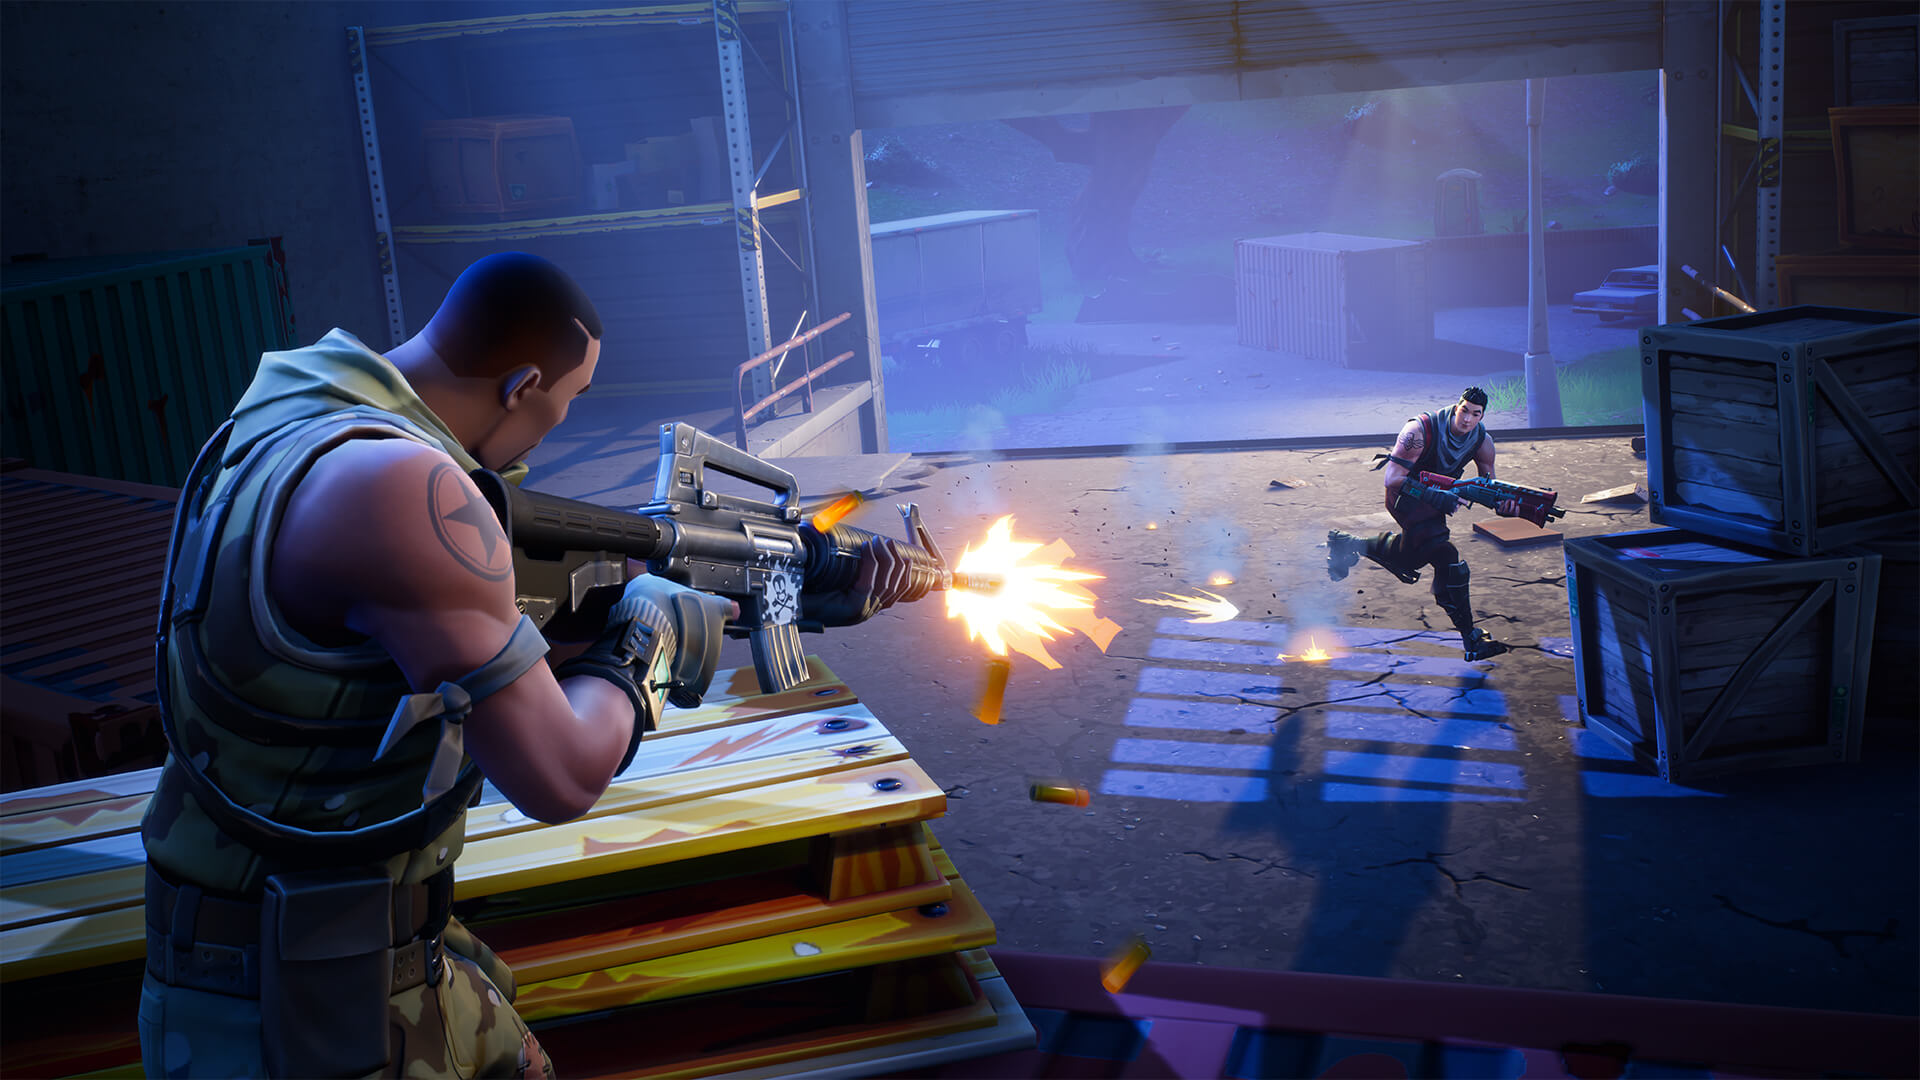 Someone signed a 13-year-old to play for a Fortnite league that doesn't exist yet screenshot